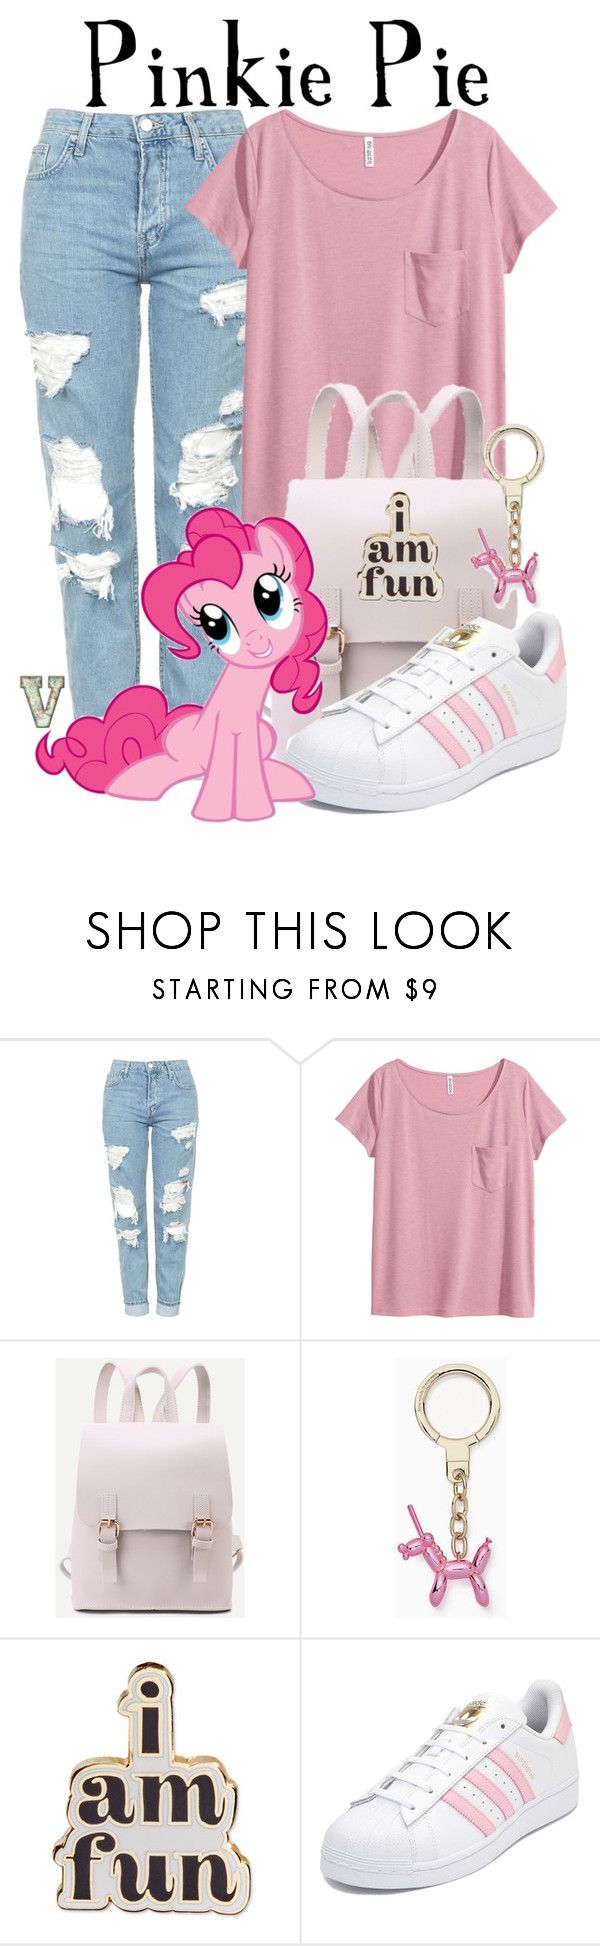 """""""Pinkie Pie (My Little Pony: Friendship is Magic)"""" by fabfandoms ❤ liked on Polyvore featuring Topshop, H&M, Kate Spade, ban.do, adidas and My Little Pony"""